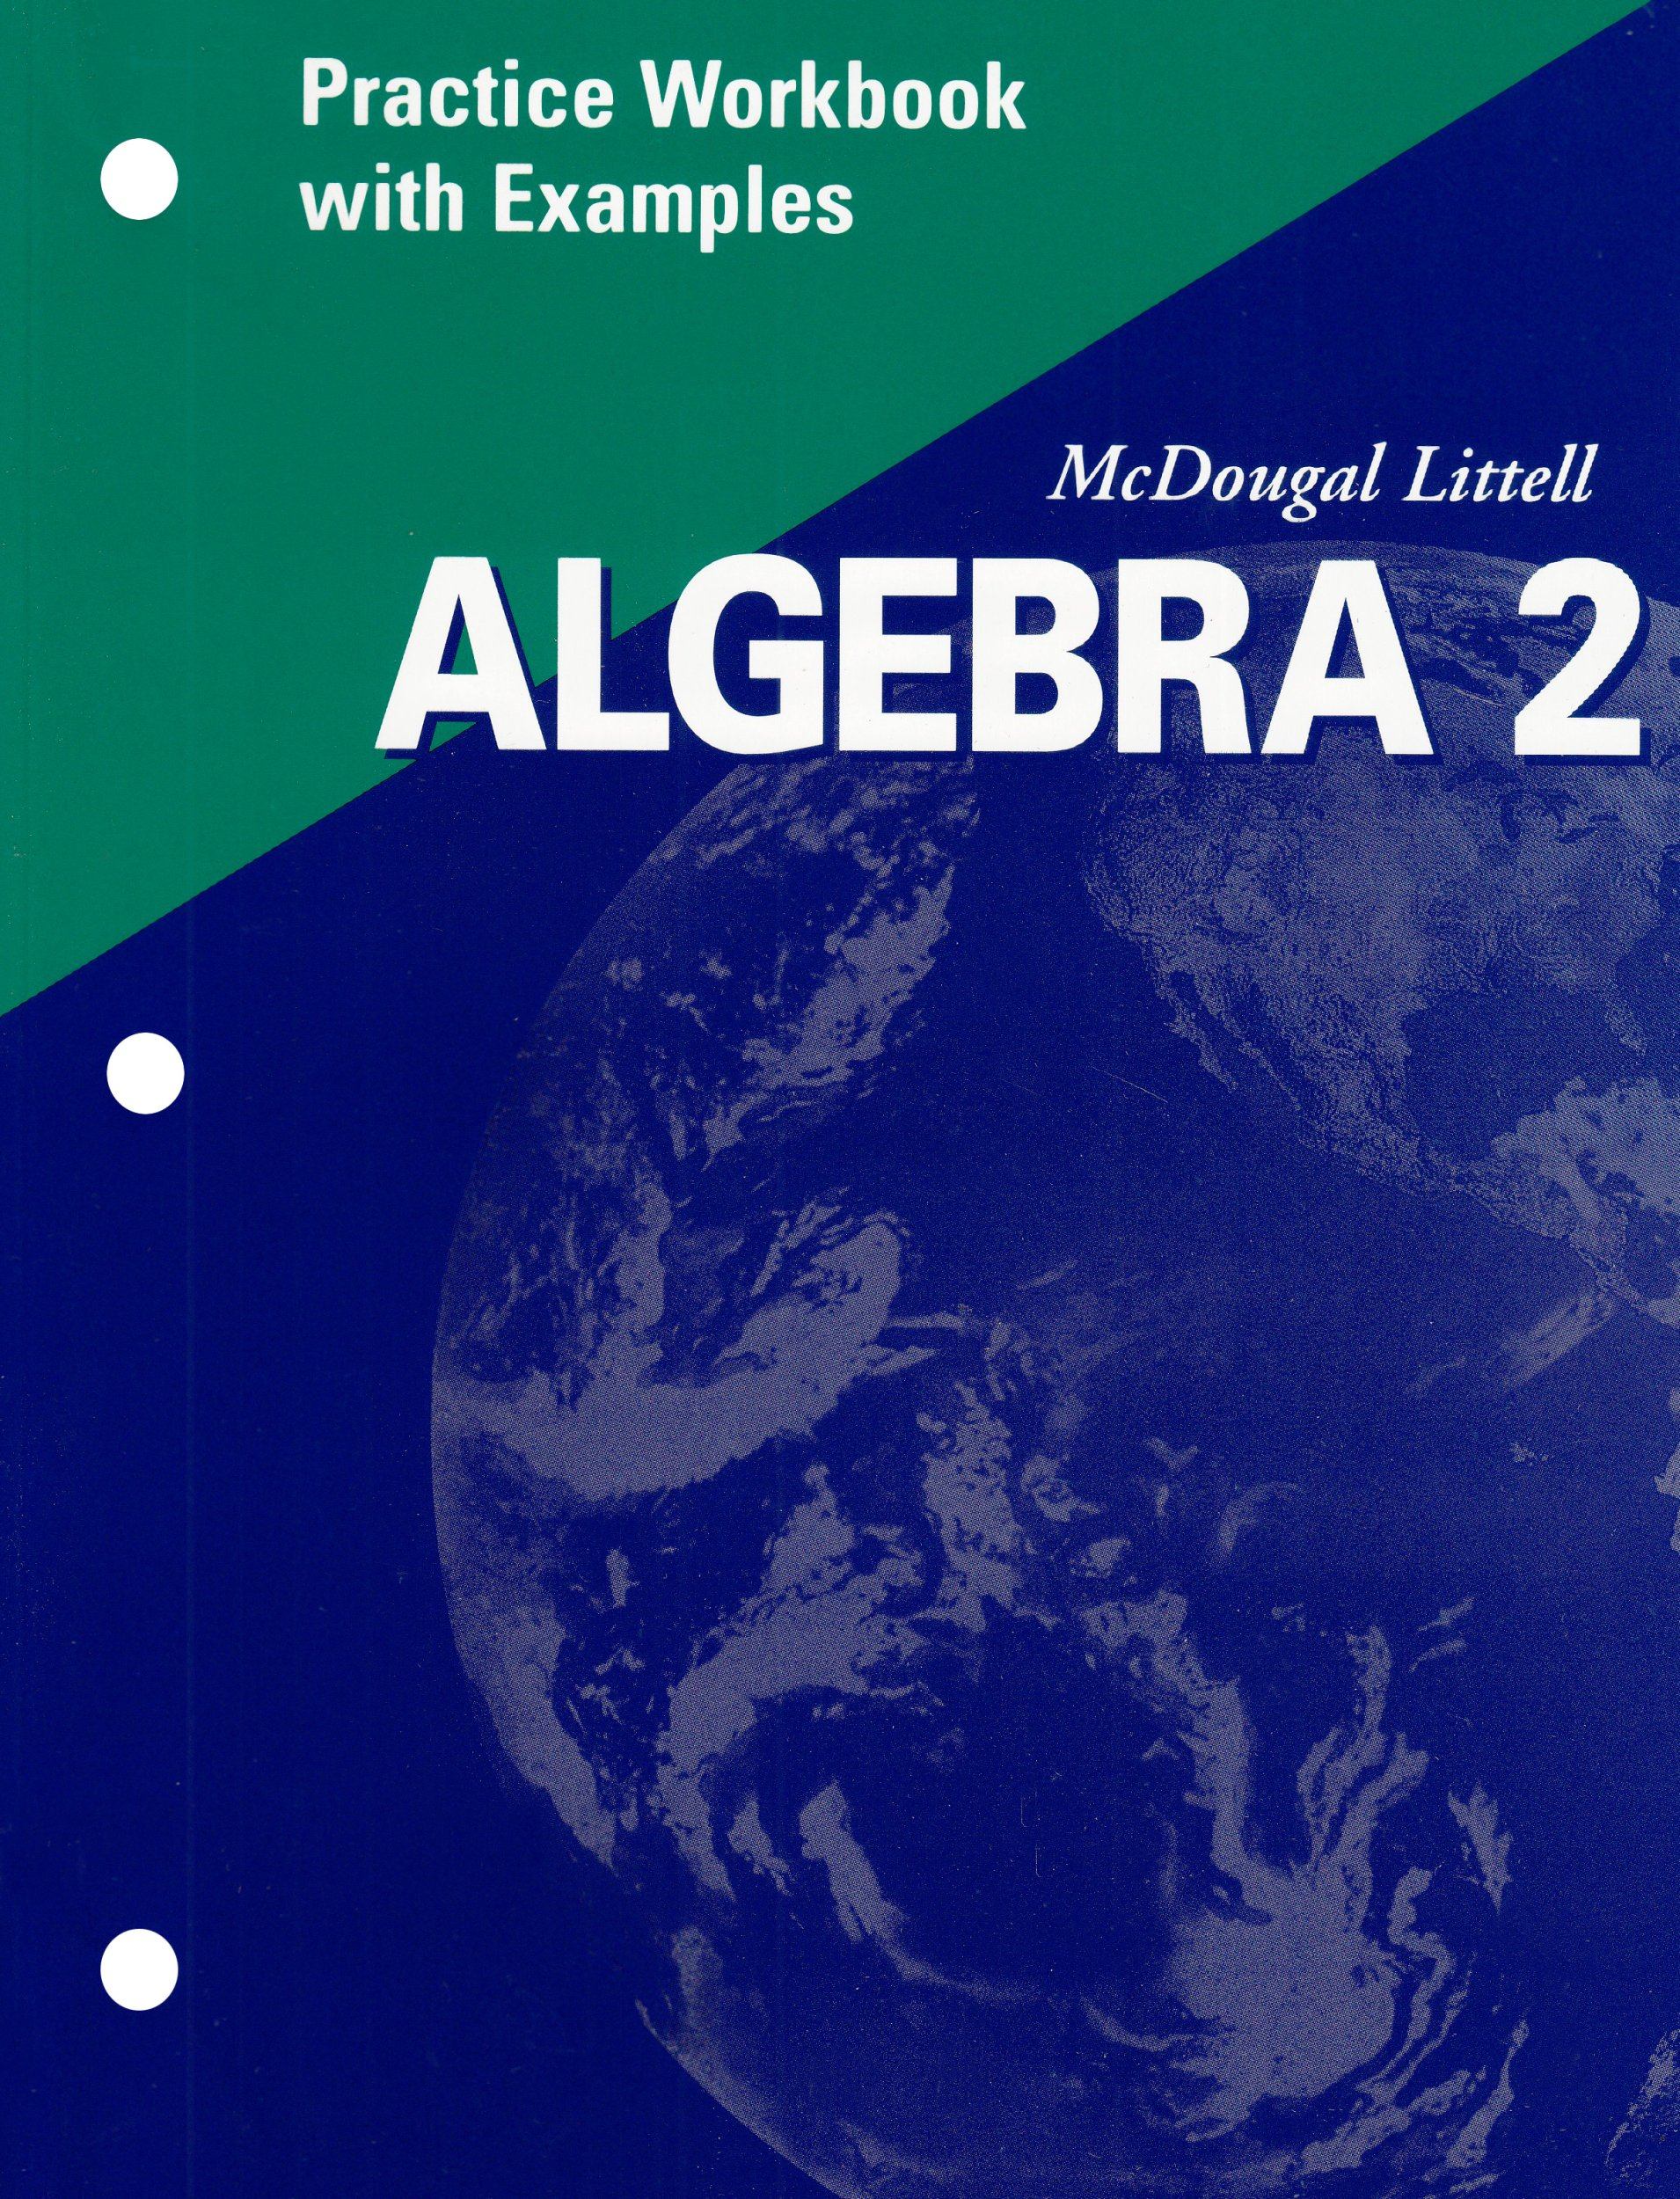 Amazon algebra 2 practice workbook with examples 9780618020348 amazon algebra 2 practice workbook with examples 9780618020348 mcdougal littel books fandeluxe Choice Image